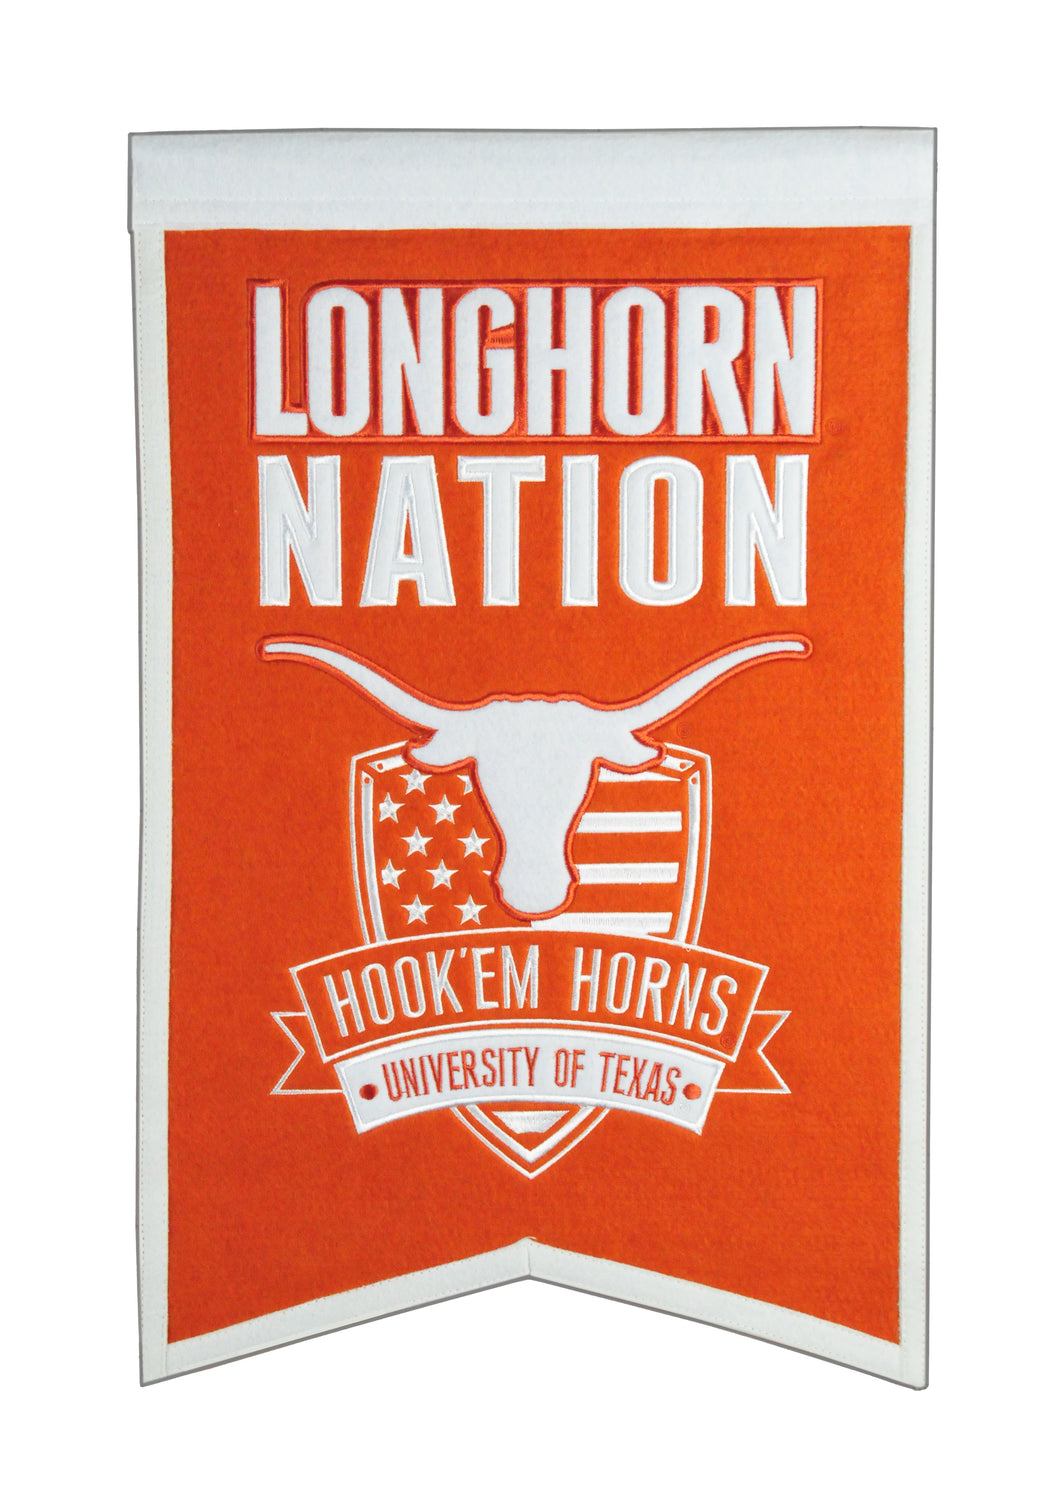 Texas Longhorns Nations Banner - 14